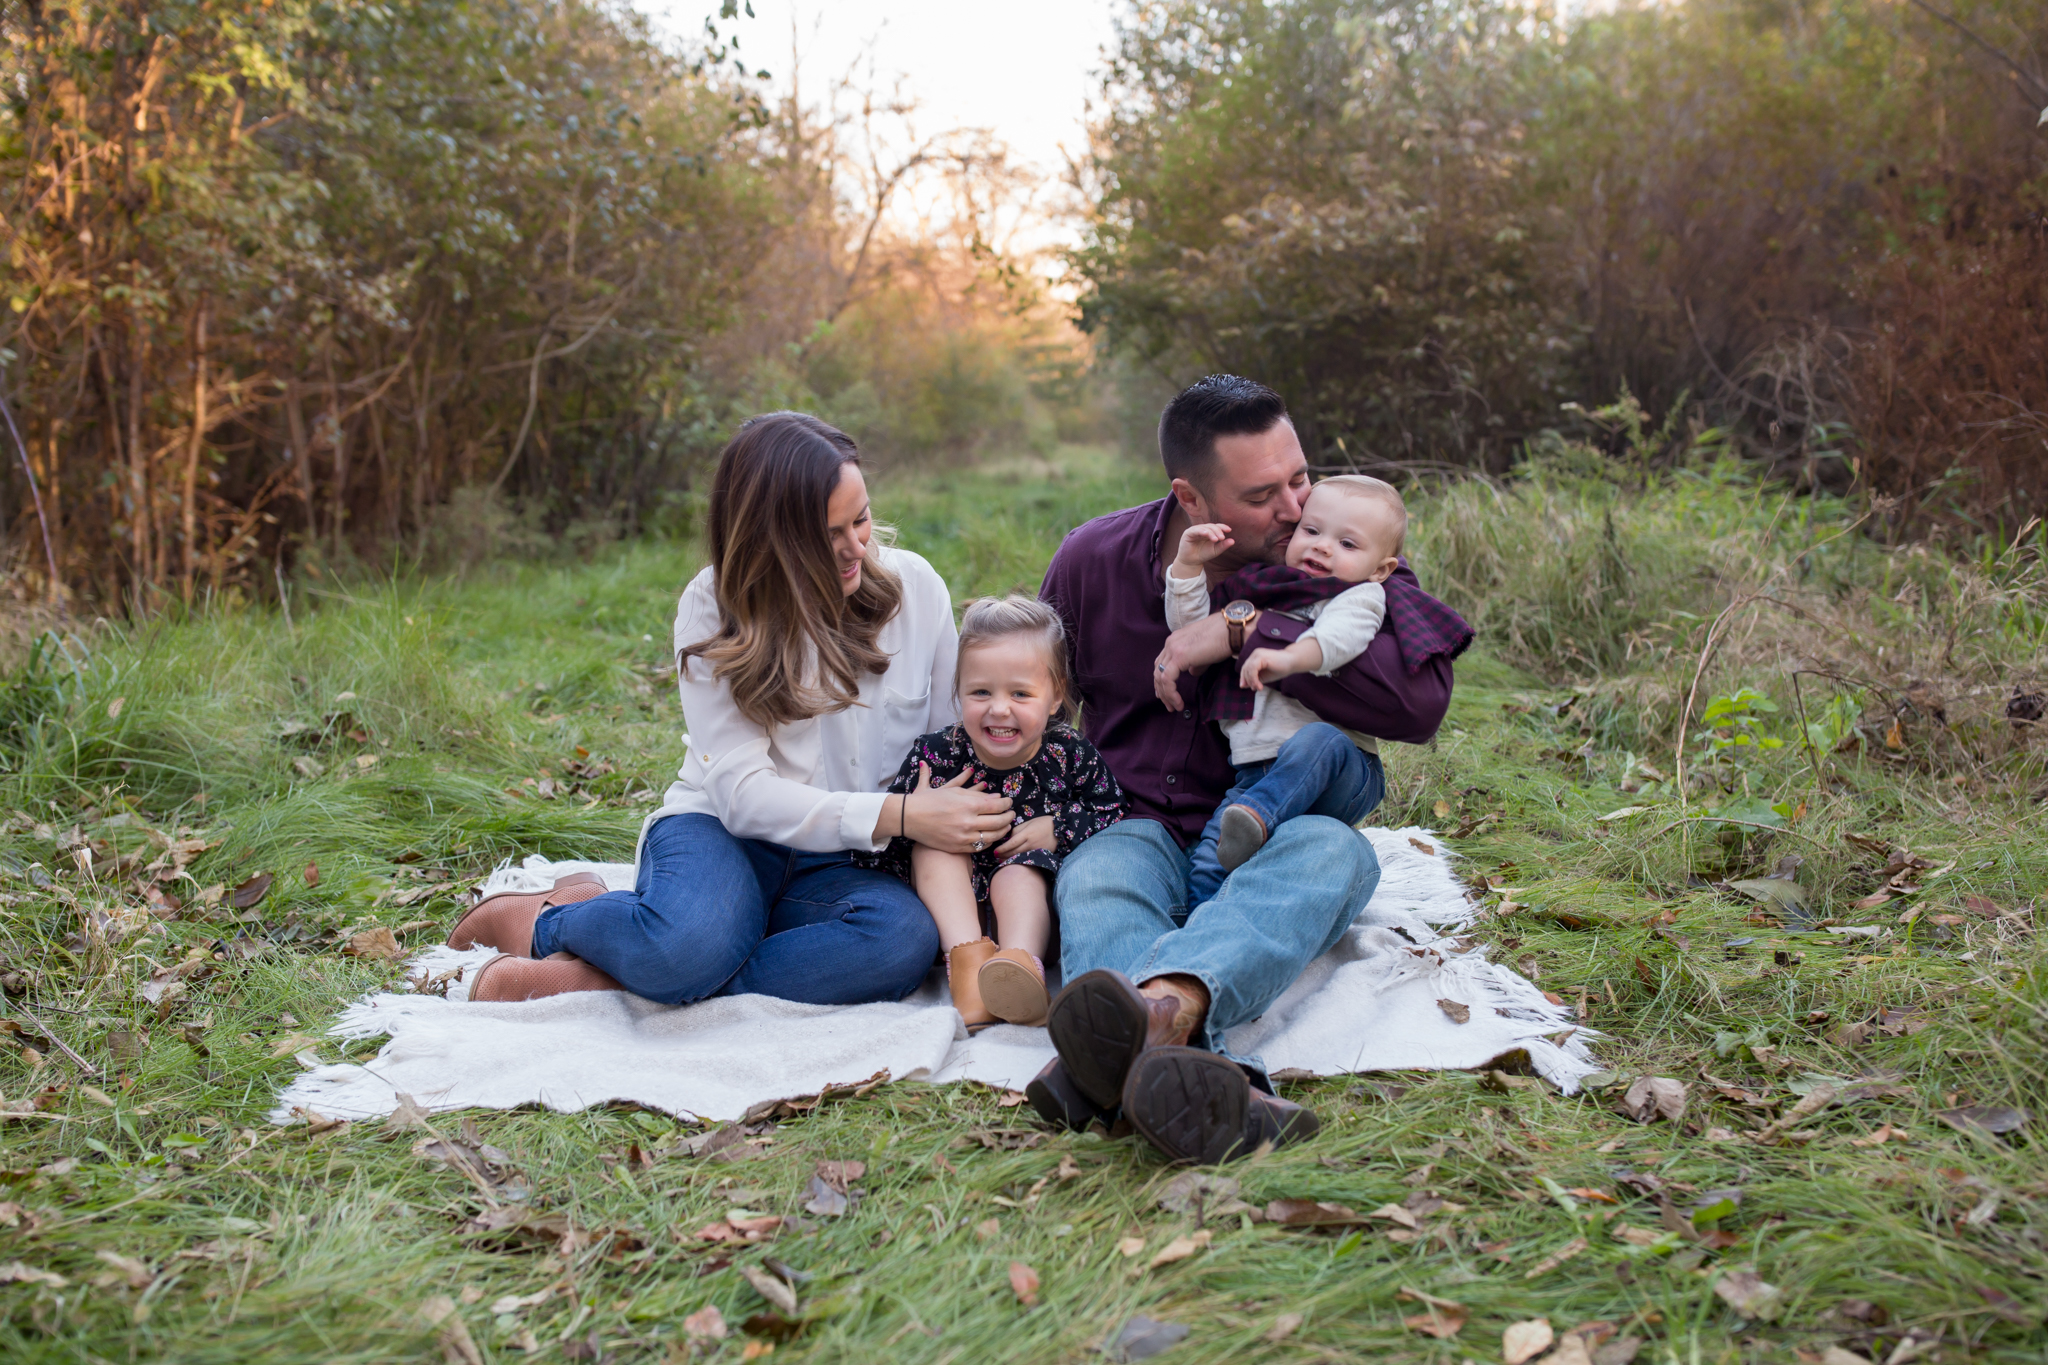 Hailey Family Fall Session, 2 kinds, family poses with young kids, Cara Peterson Photography Rockford IL-3.jpg